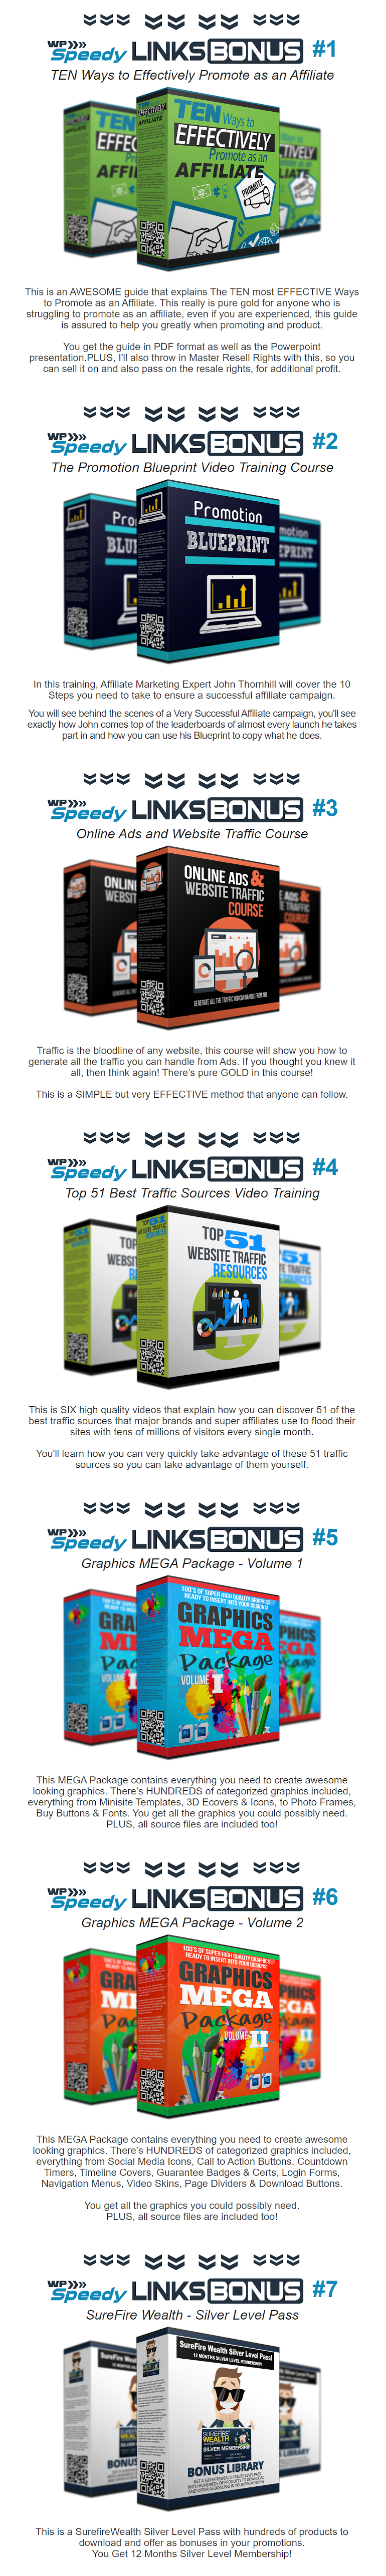 WP Speedy Links Bonuses